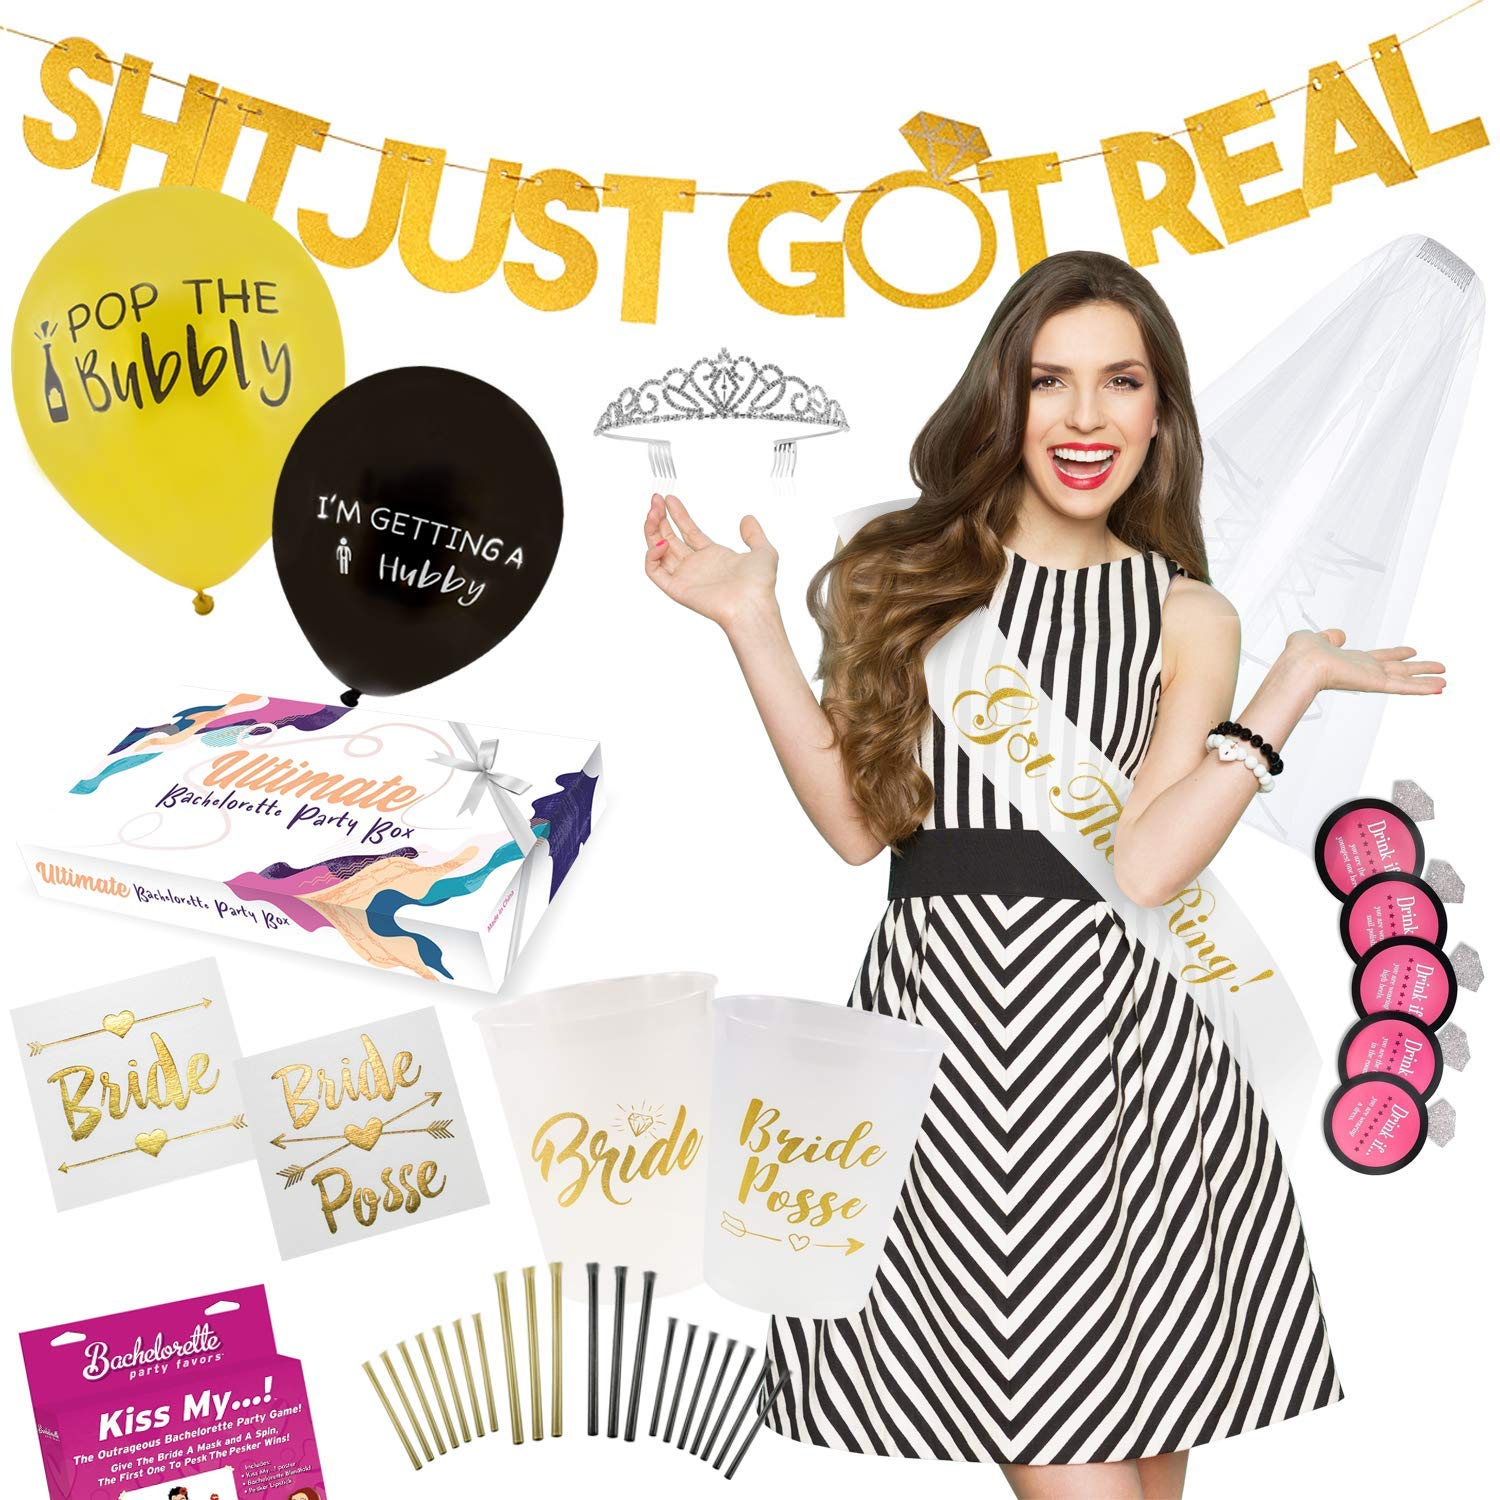 Ultimate Bachelorette Party Decorations Mega Value Kit - Tiara, Sash, Veil/Comb, Banner, Tattoos, Cups, Straws, Balloons, Party Games, Drinking Game - Bride To Be Bridal Shower - Party Supplies